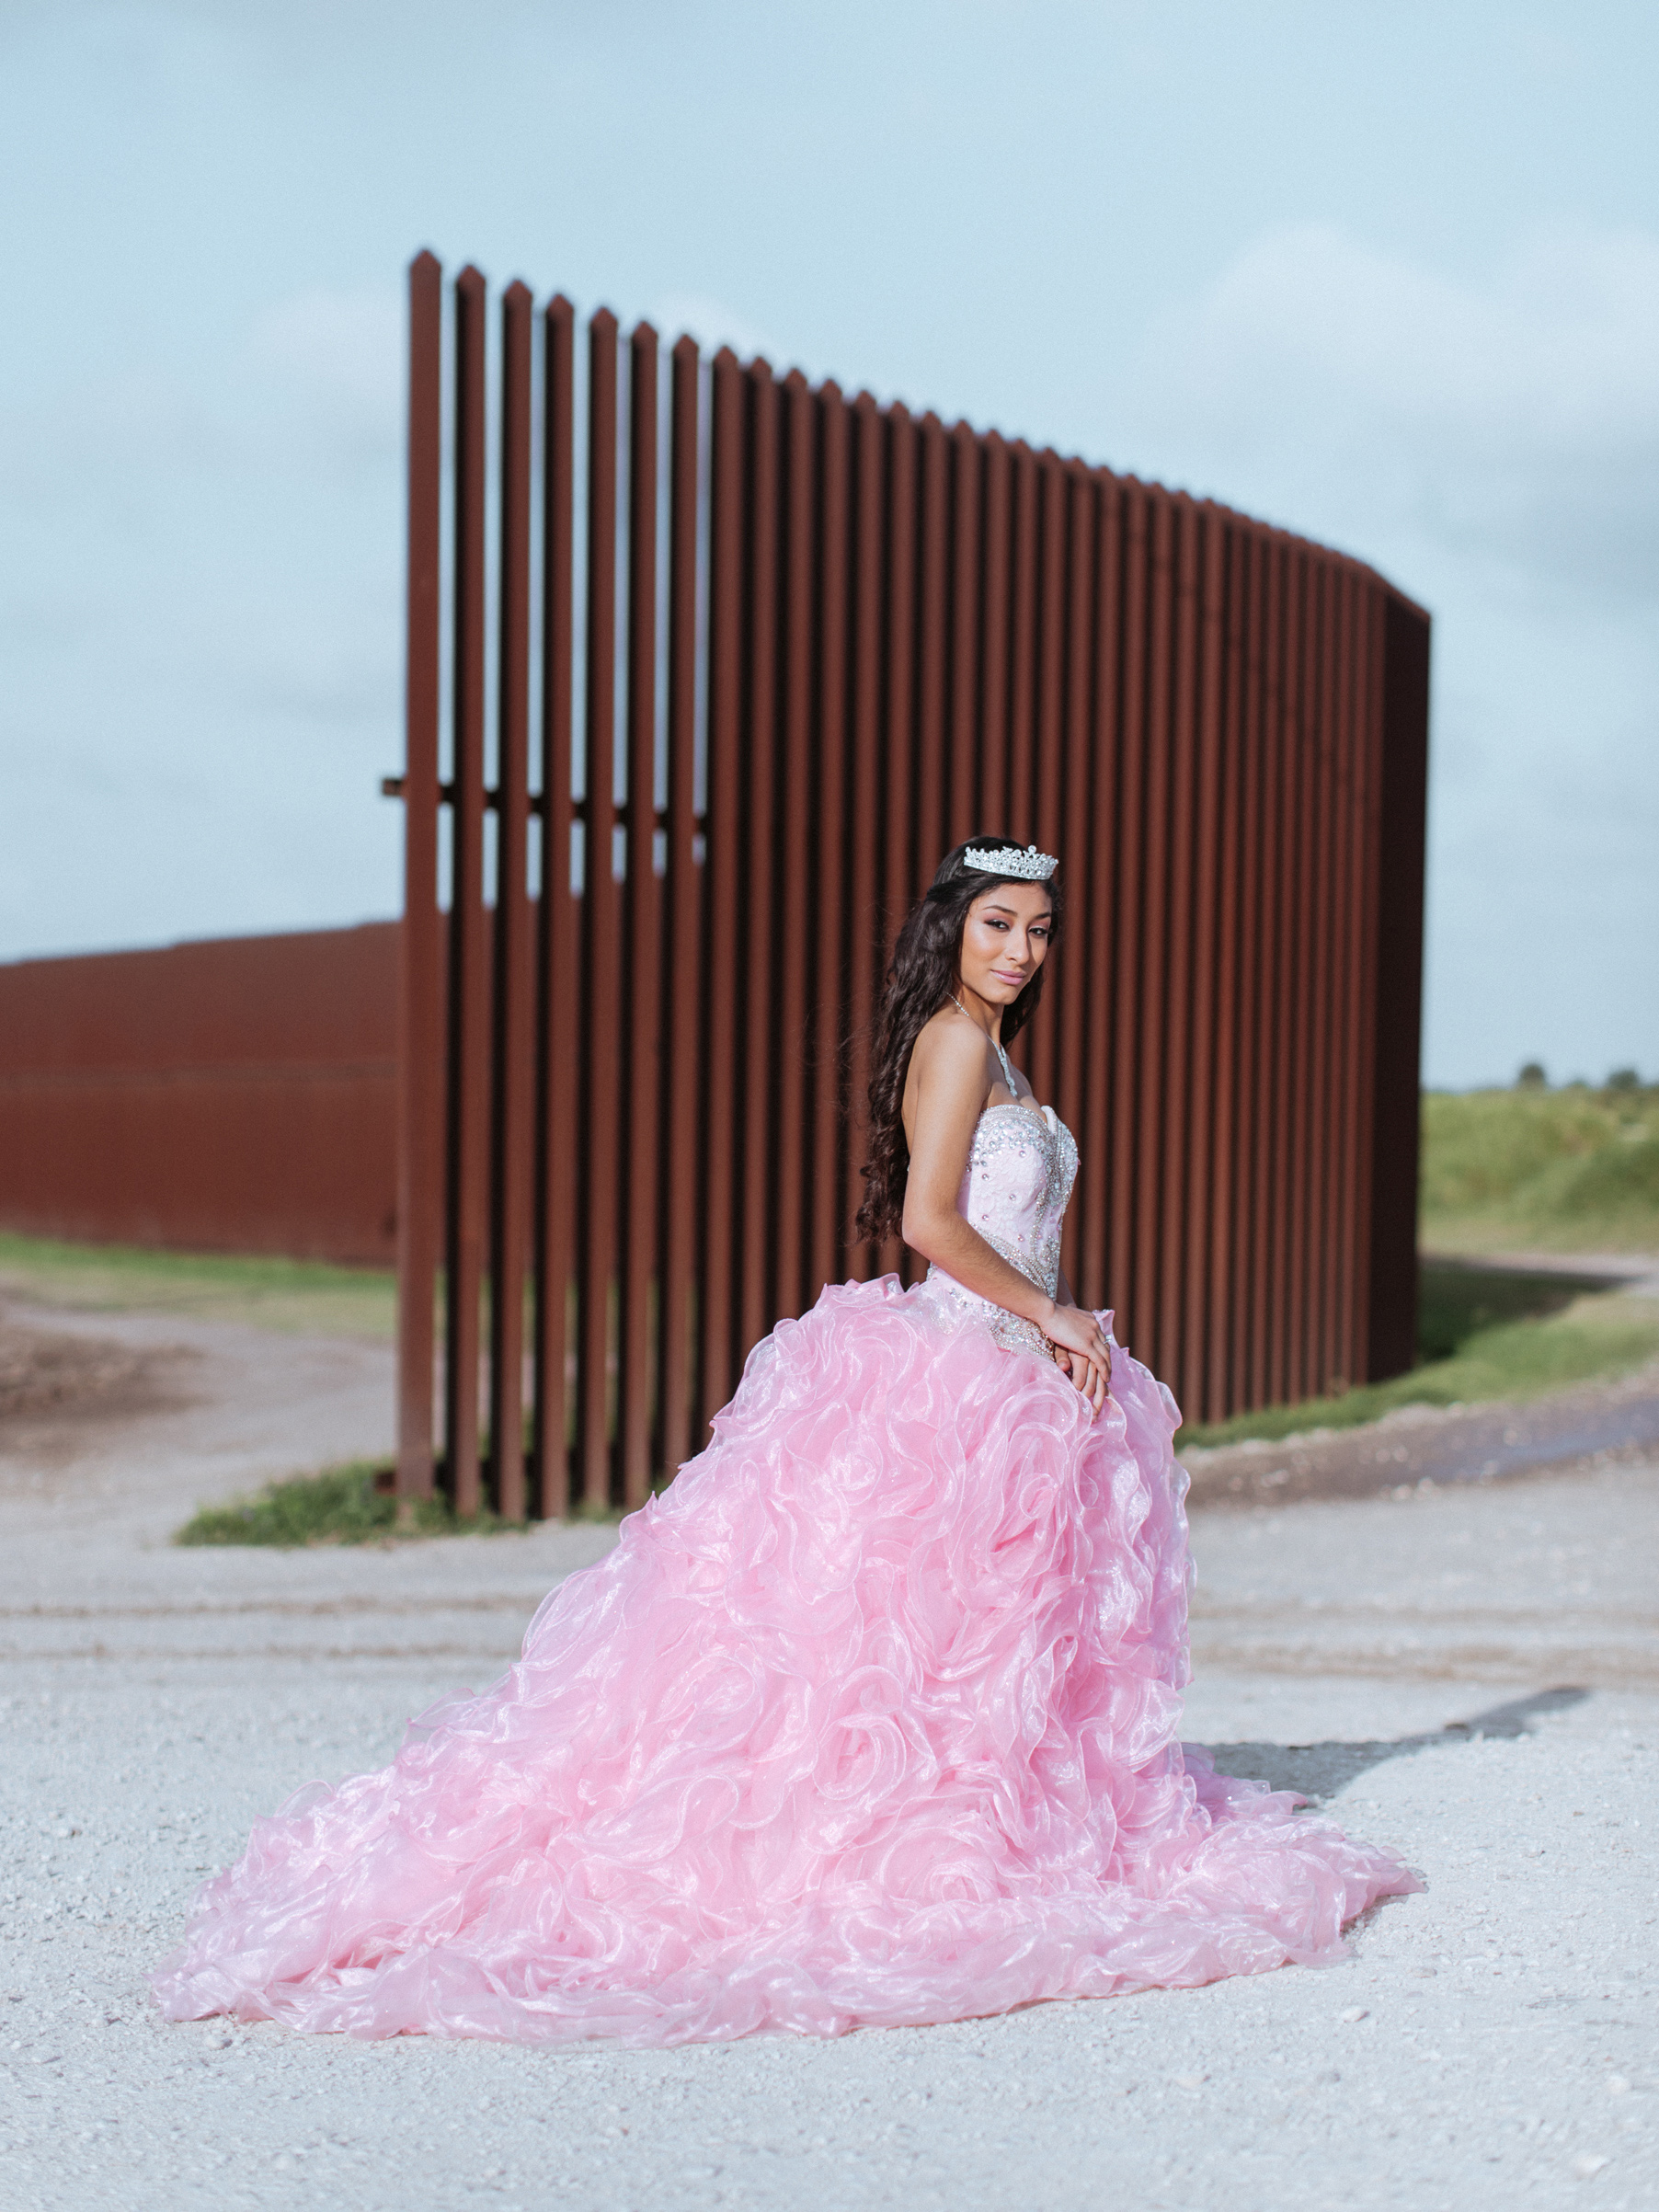 Jaymin Martinez in her quinceanera dress next to the border fence, Brownsville, Texas.